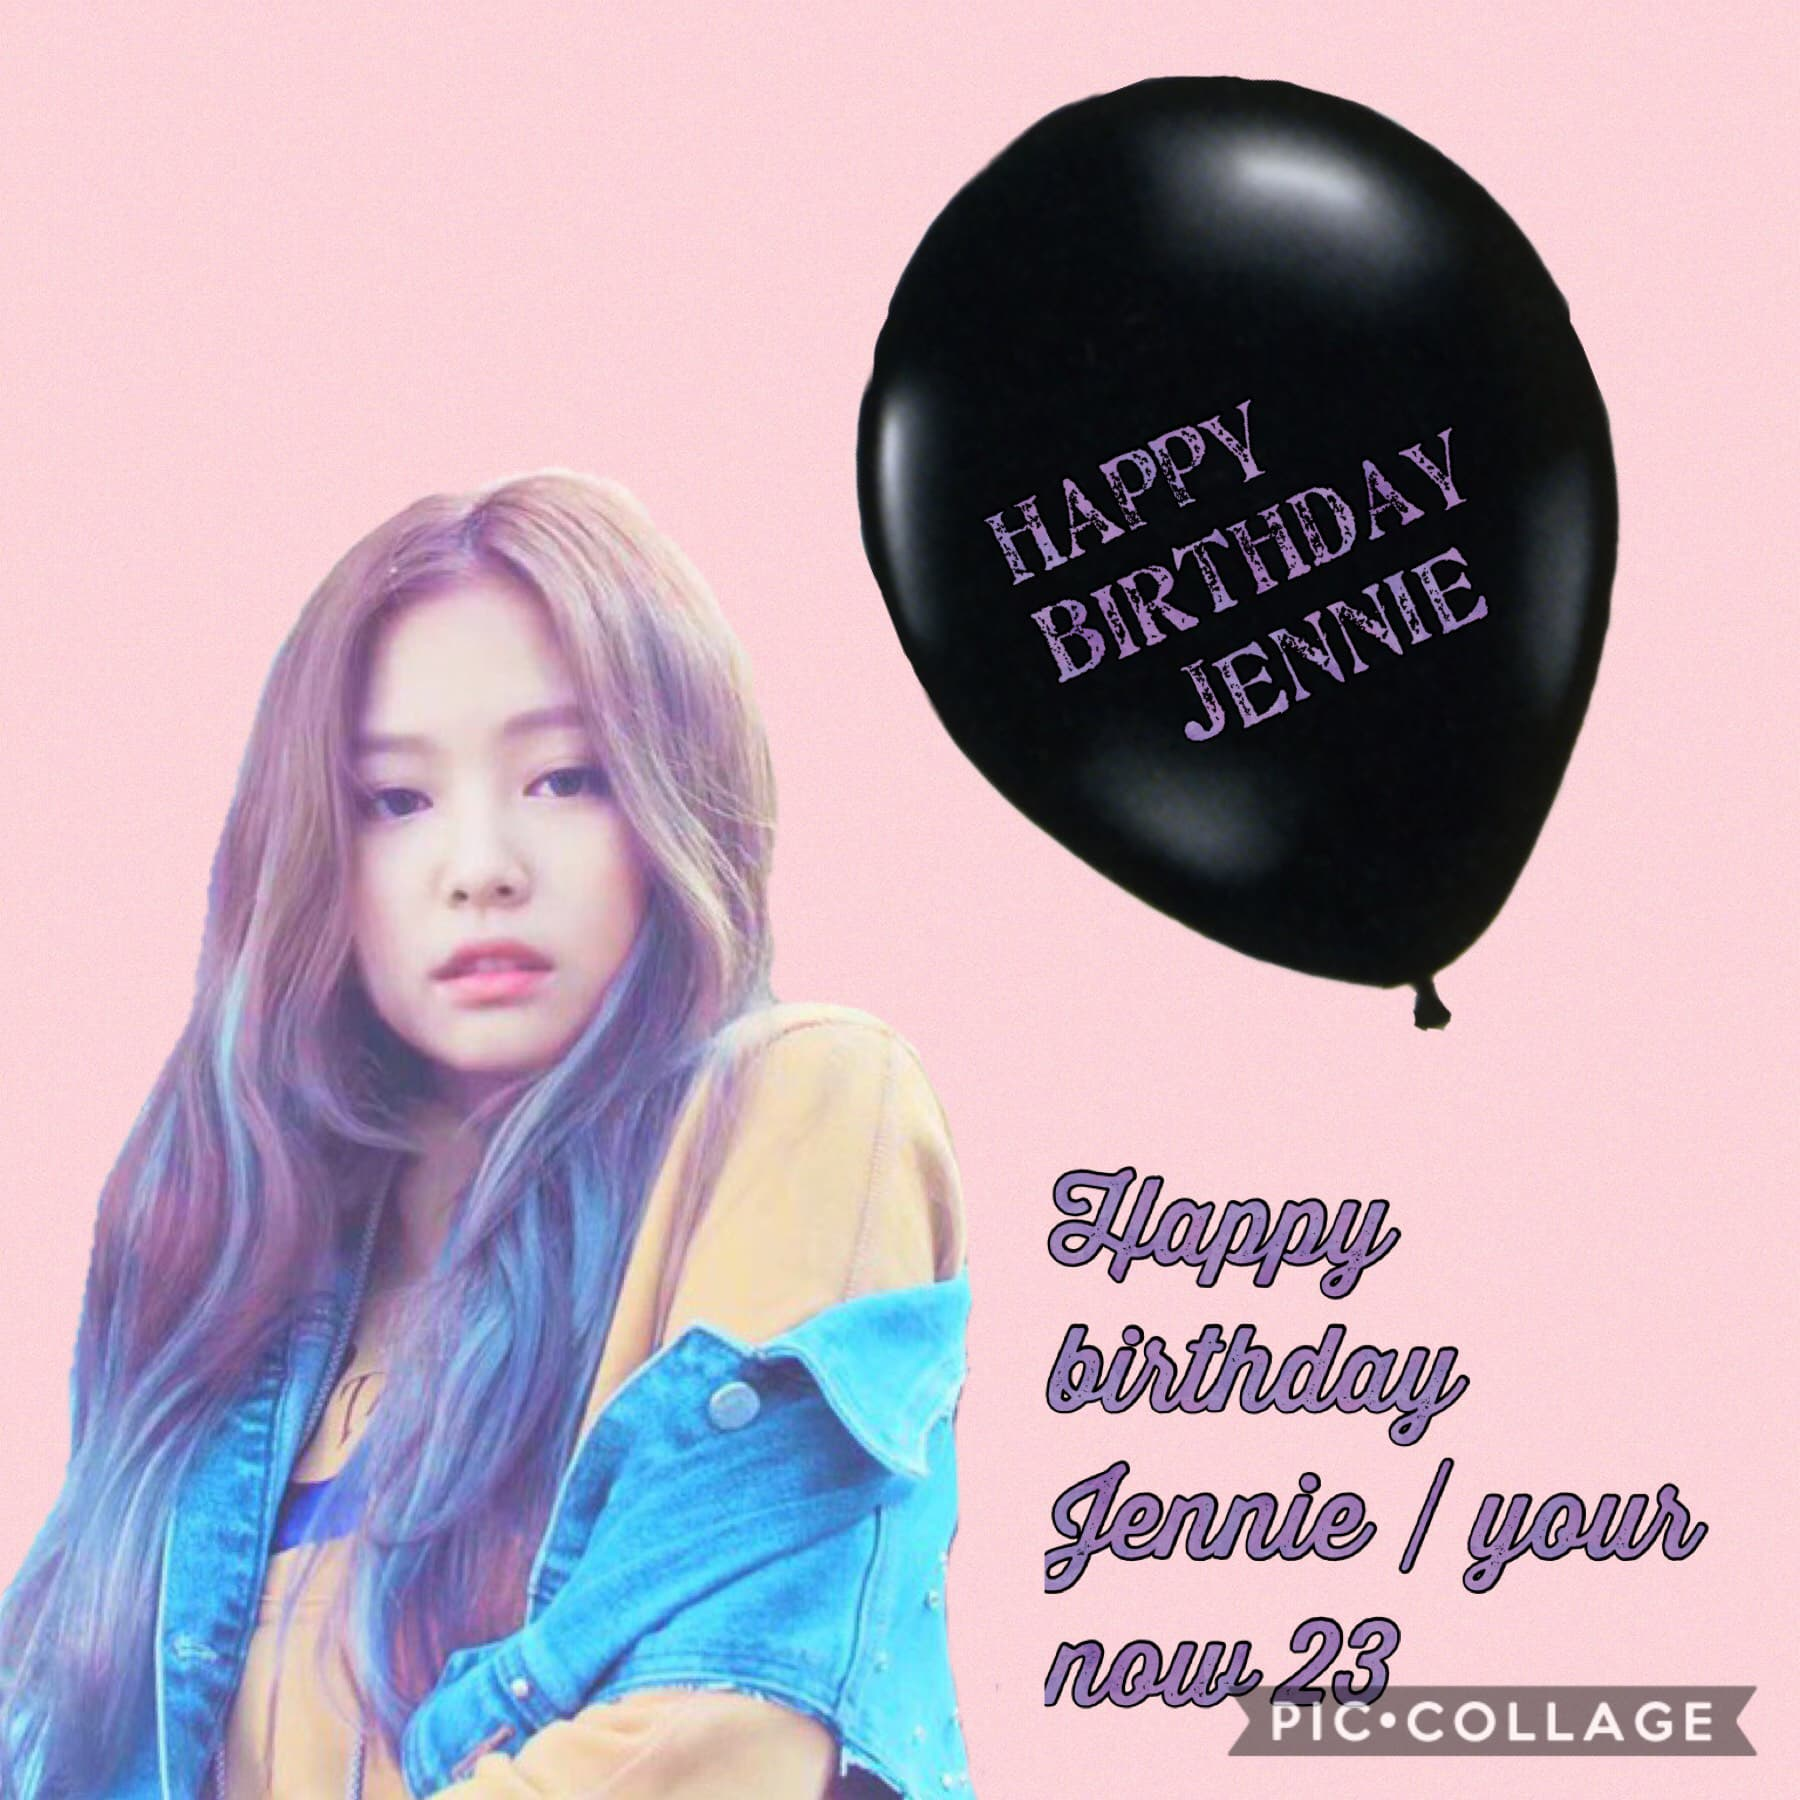 Like if you wish Jennie a happy birthday